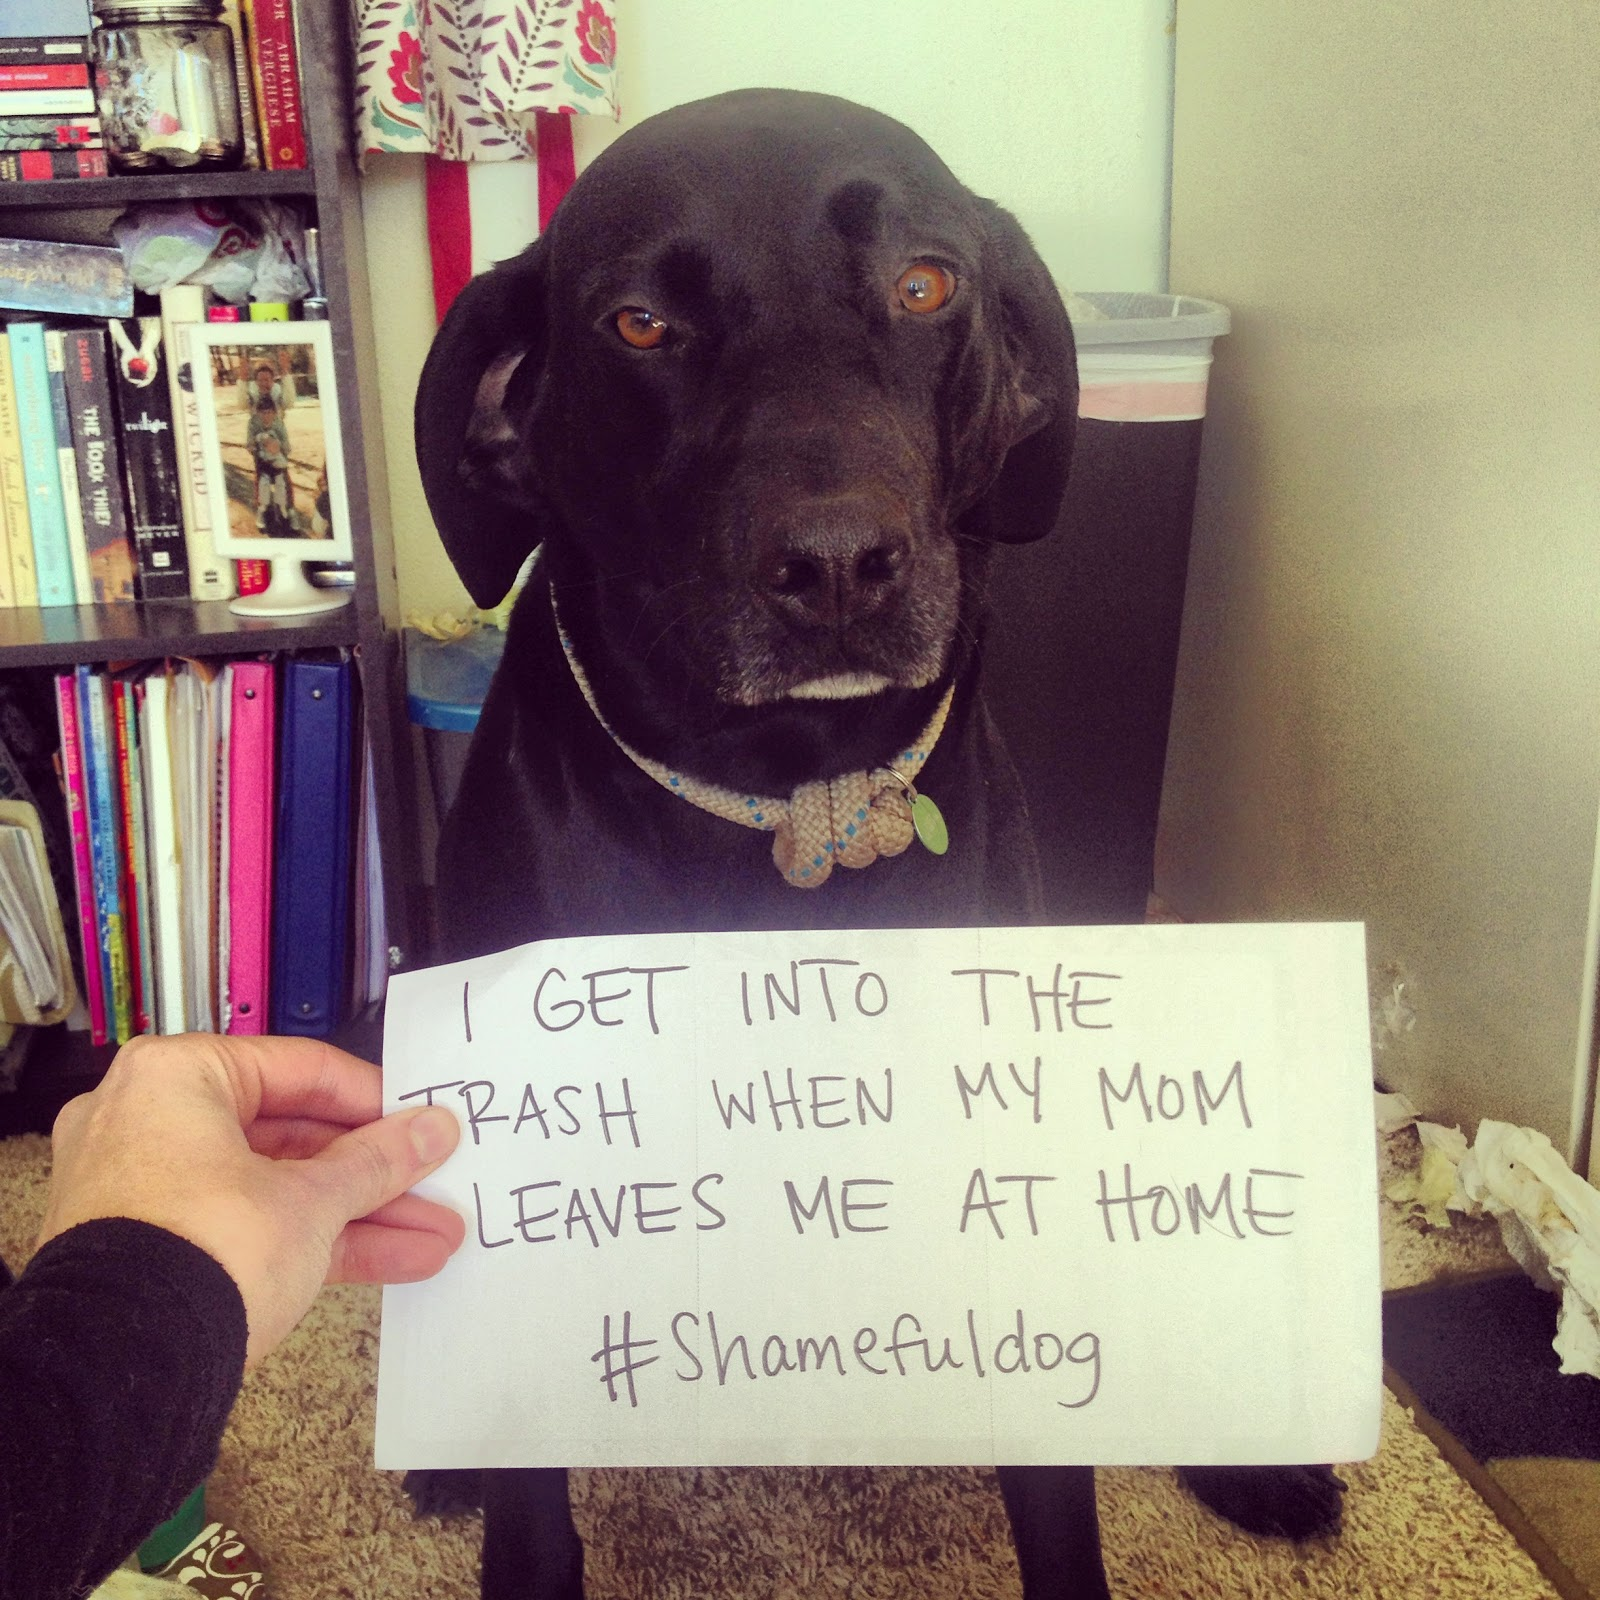 My Dog Wont Stop Licking Carpet: Mountains & Mode: What To Do When You're Dog Gets Into The